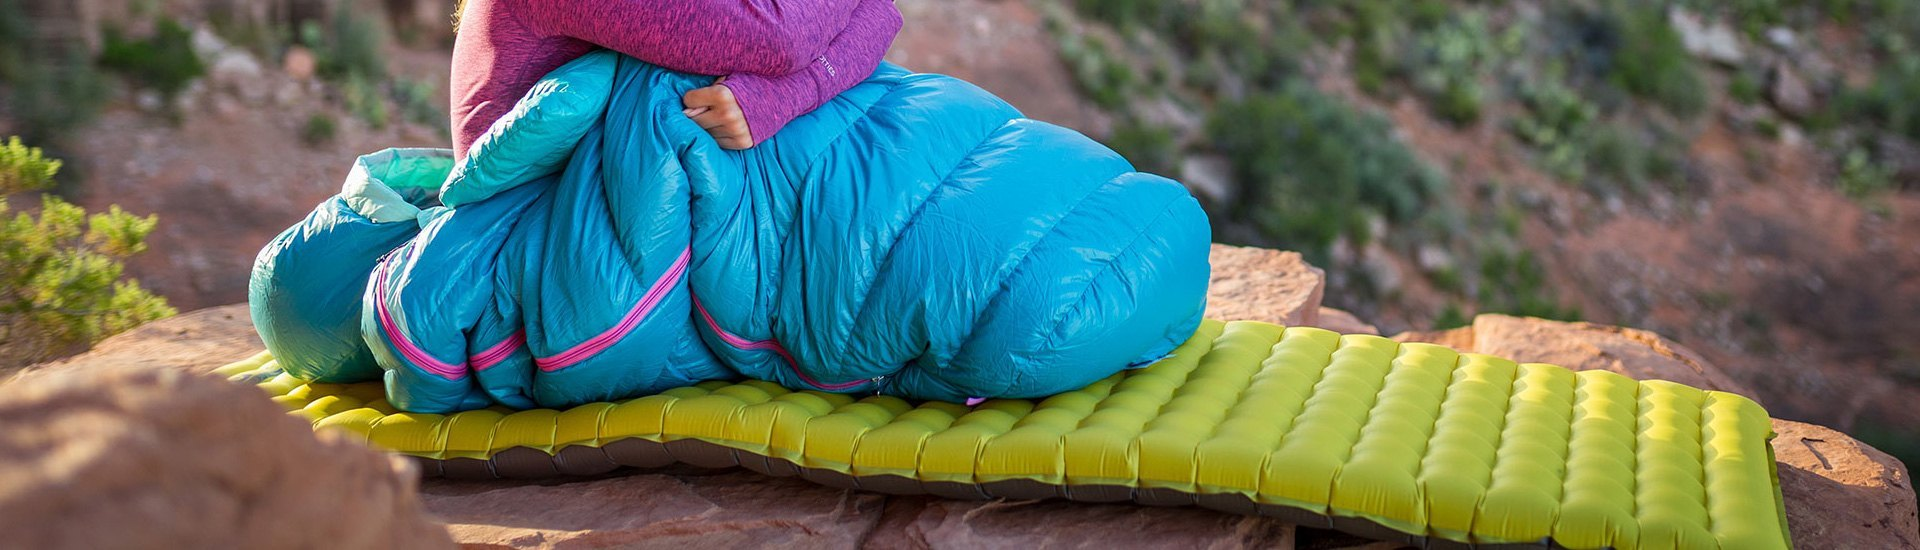 Best Sleeping Bags Reviews and Buying Guide by www.snoremagazine.com